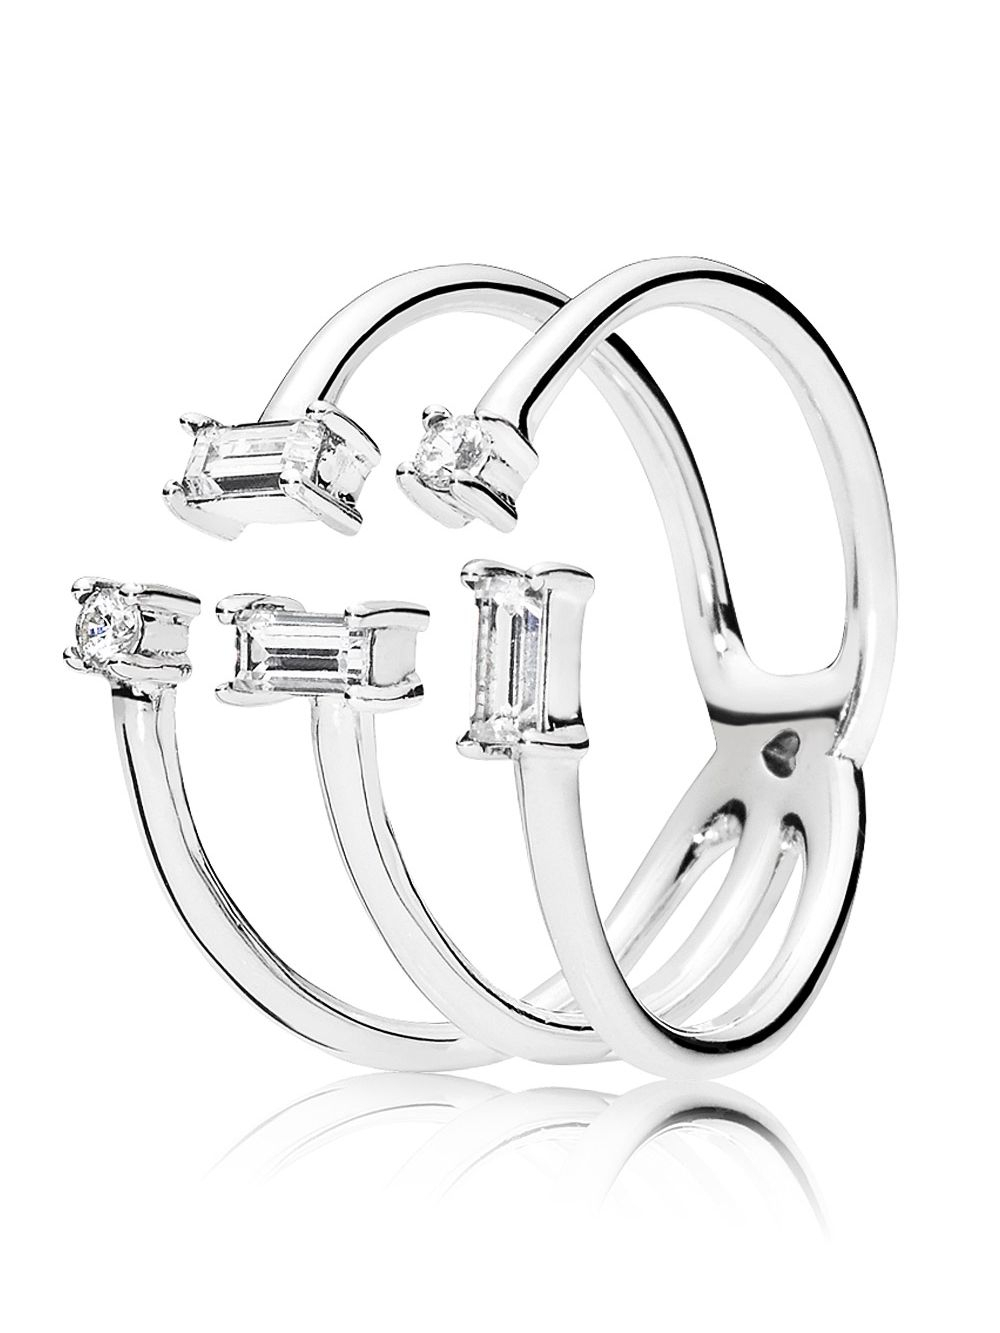 Pandora 197527Cz Ladies' Ring Shards Of Sparkle Pertaining To 2018 Sparkling & Polished Lines Rings (View 16 of 25)